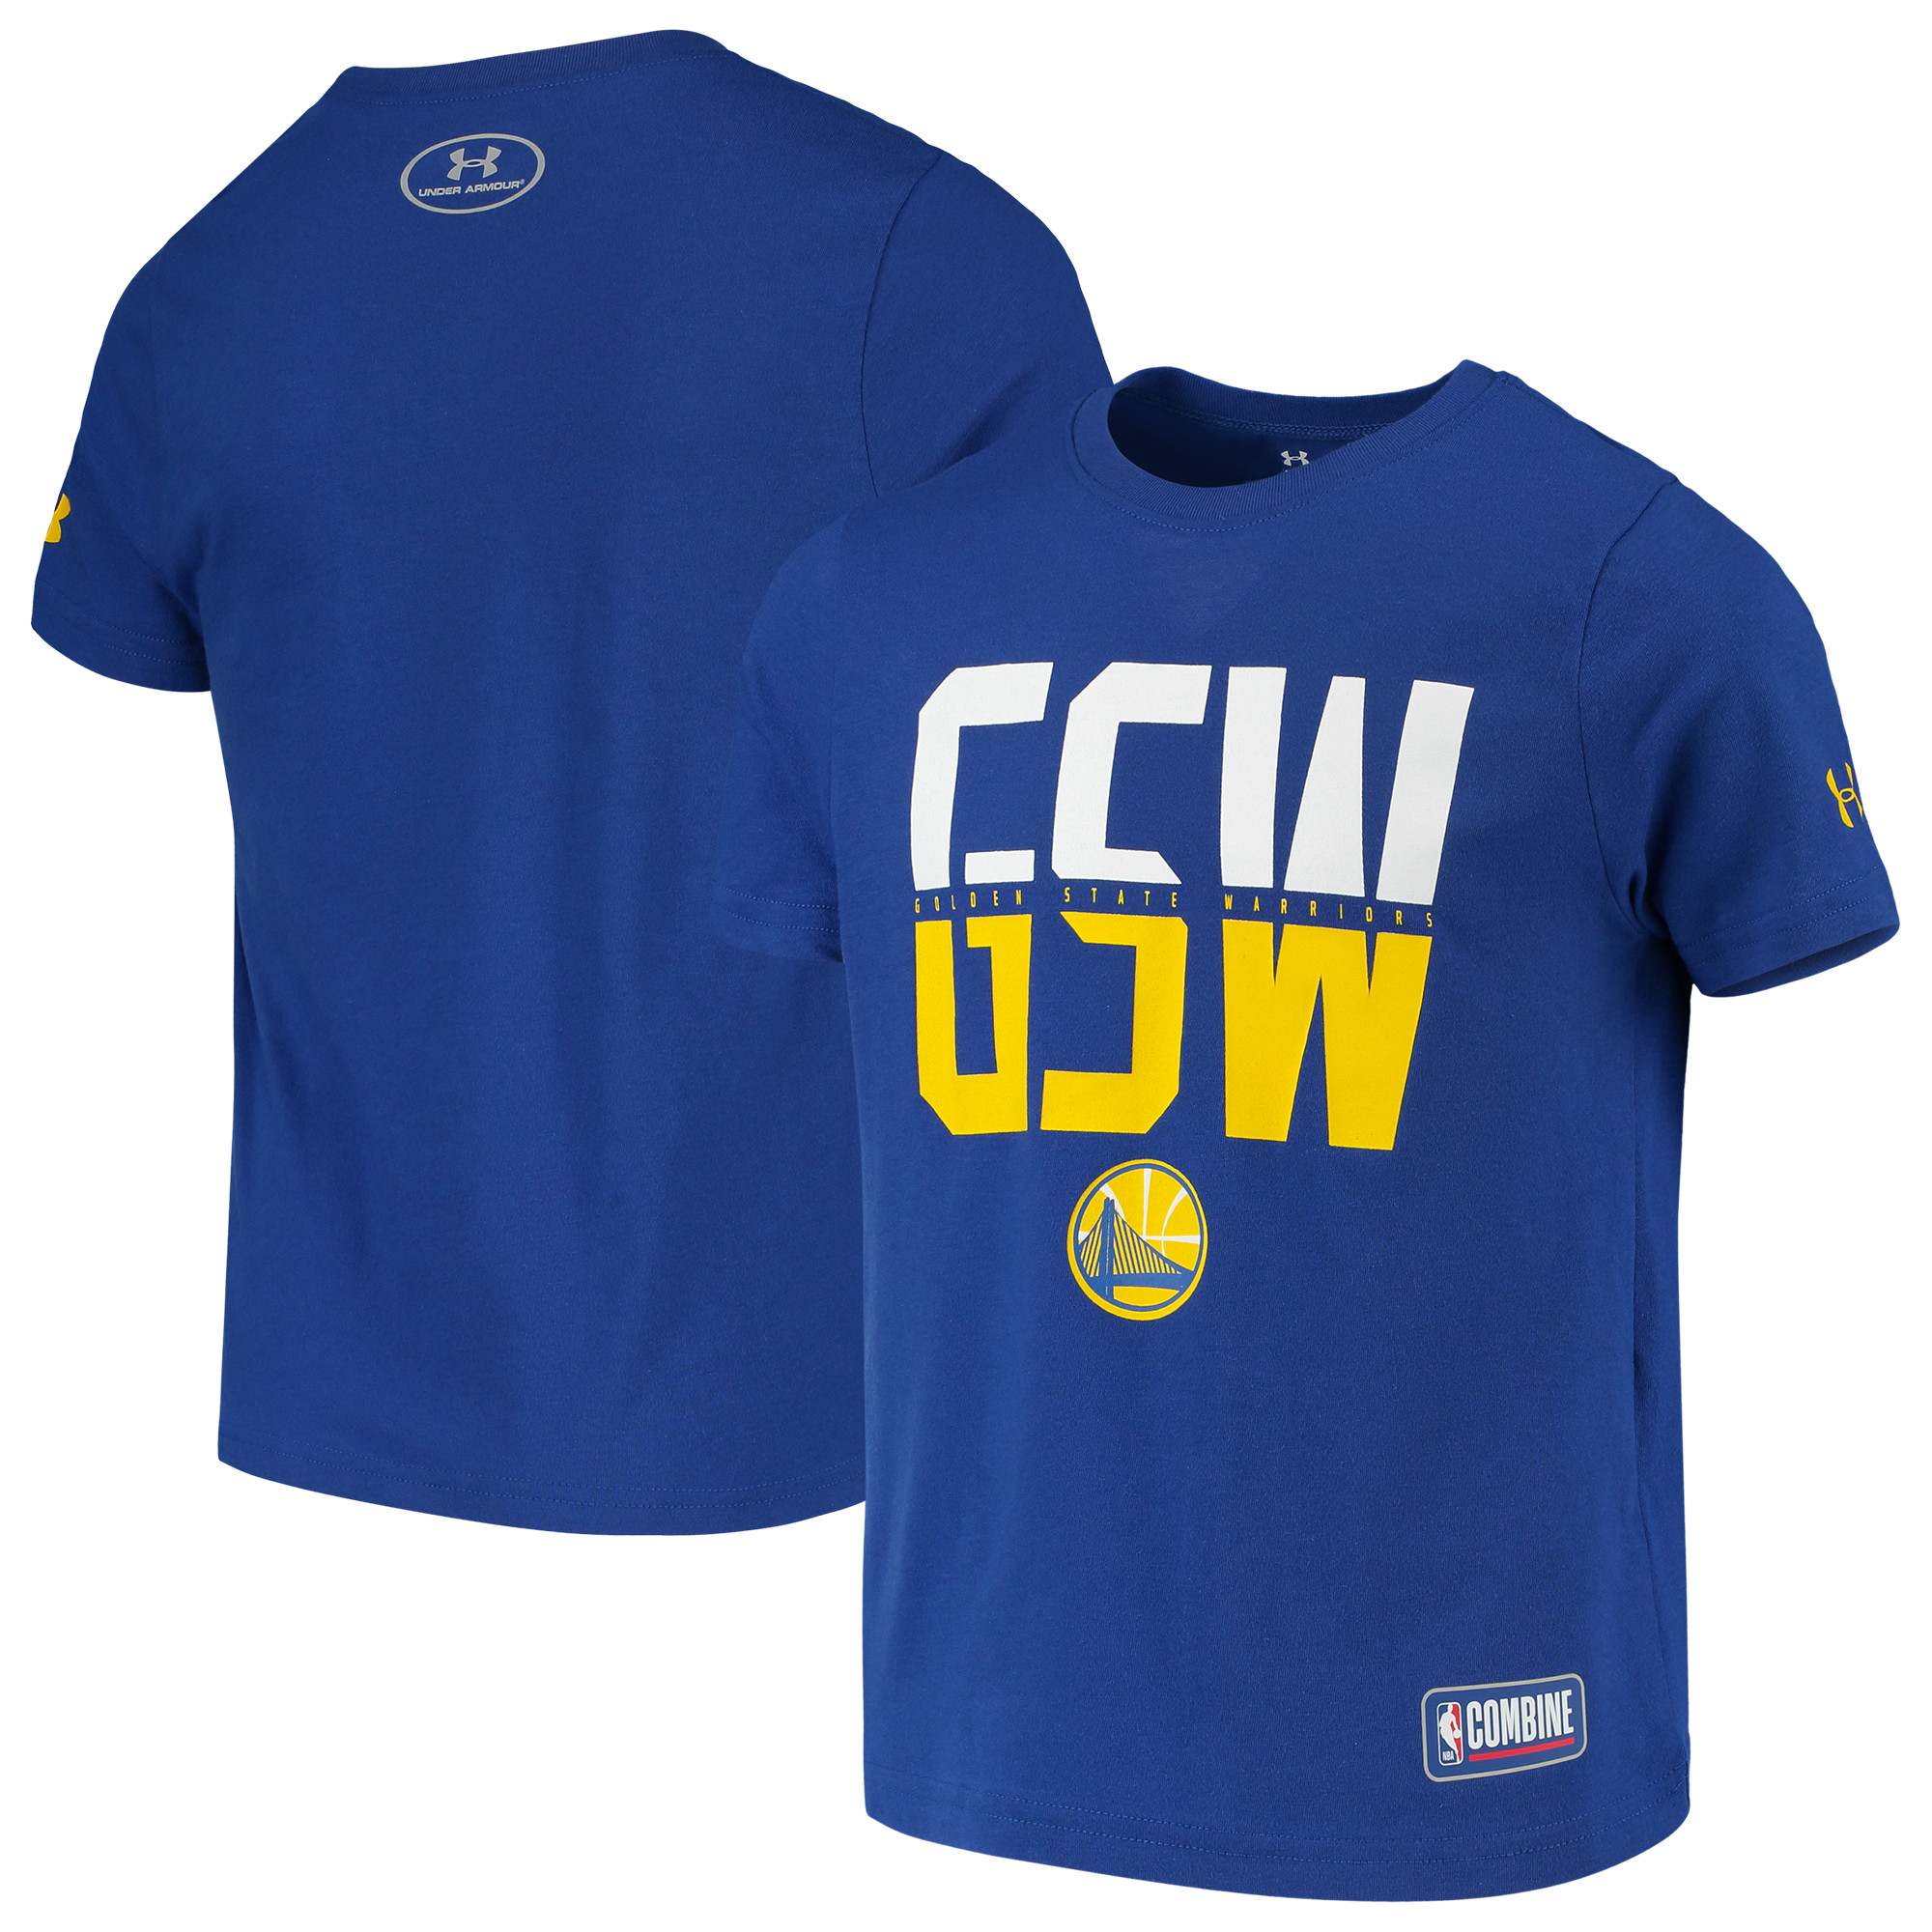 Golden State Warriors Under Armour Youth Combine Authentic City Performance T-Shirt - Royal